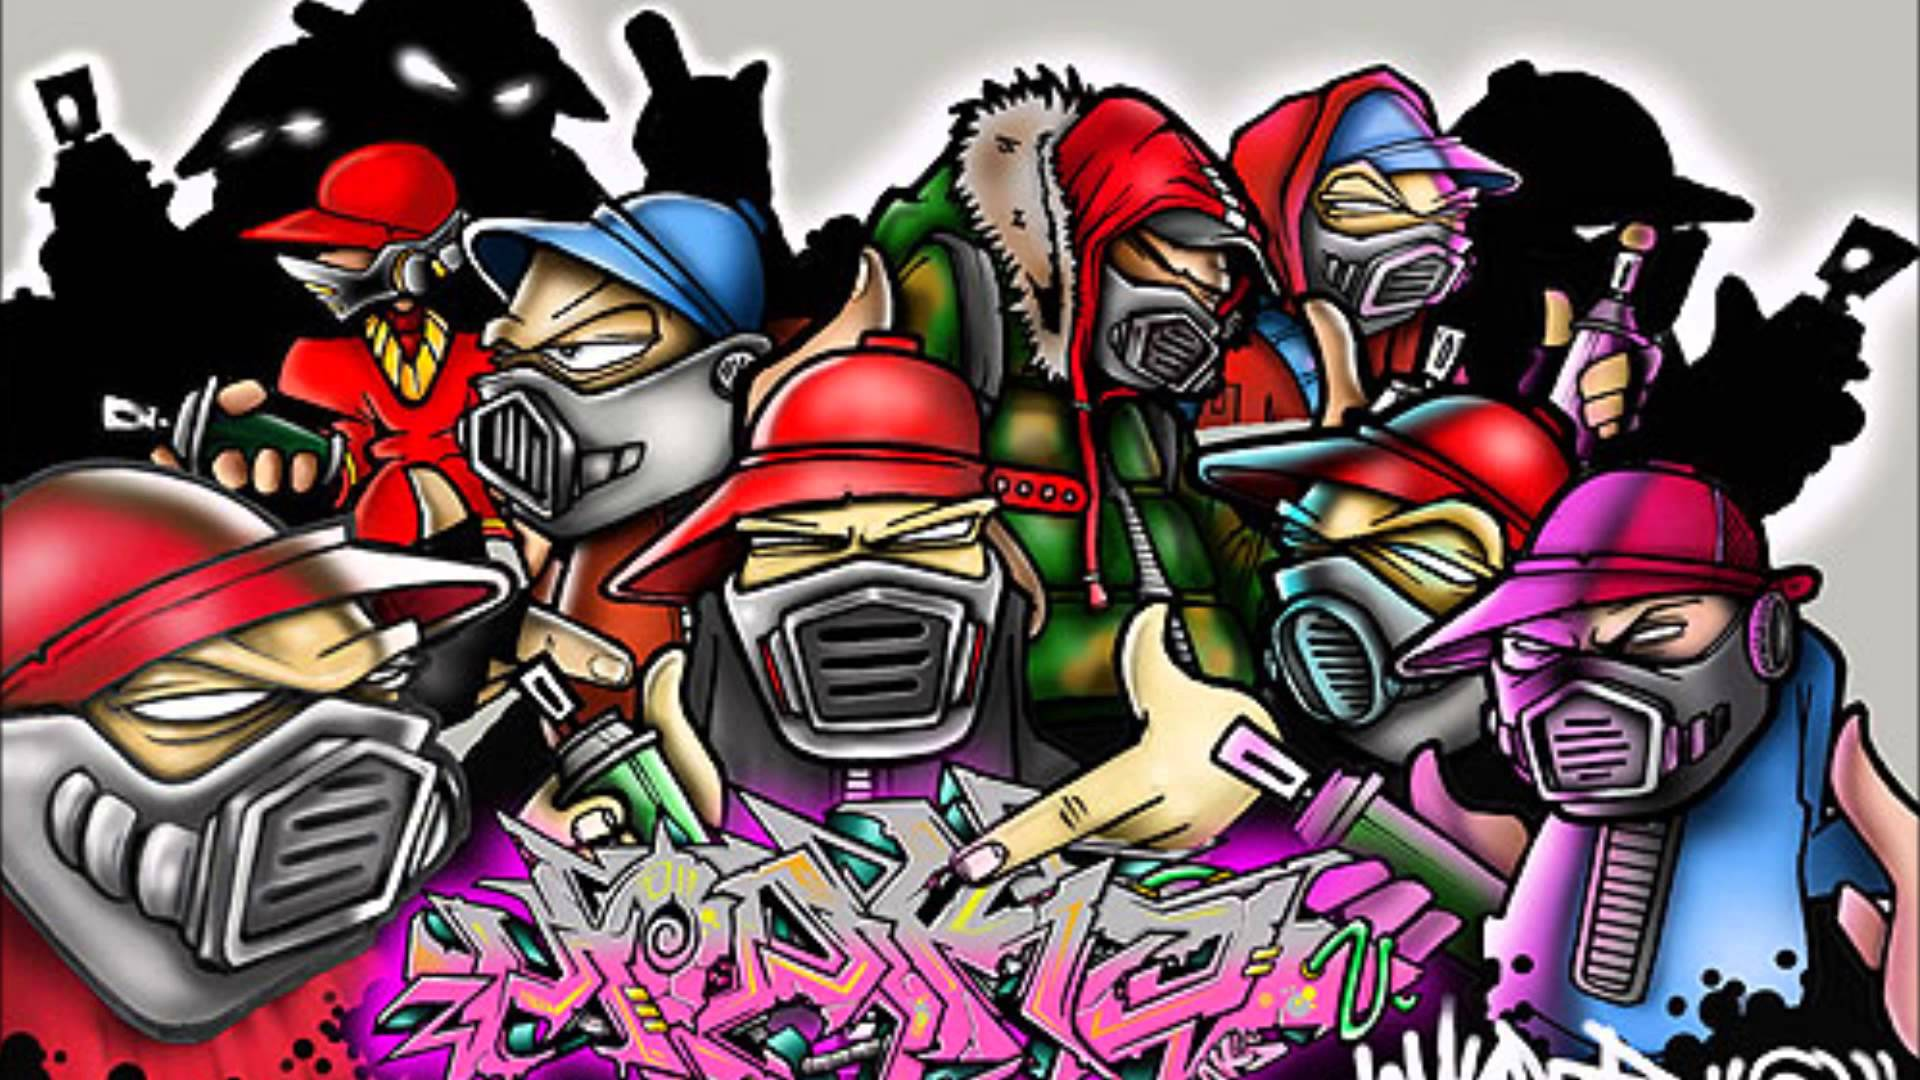 Crips Vs Bloods Wallpaper Crips vs bloods wallpaper 1920x1080